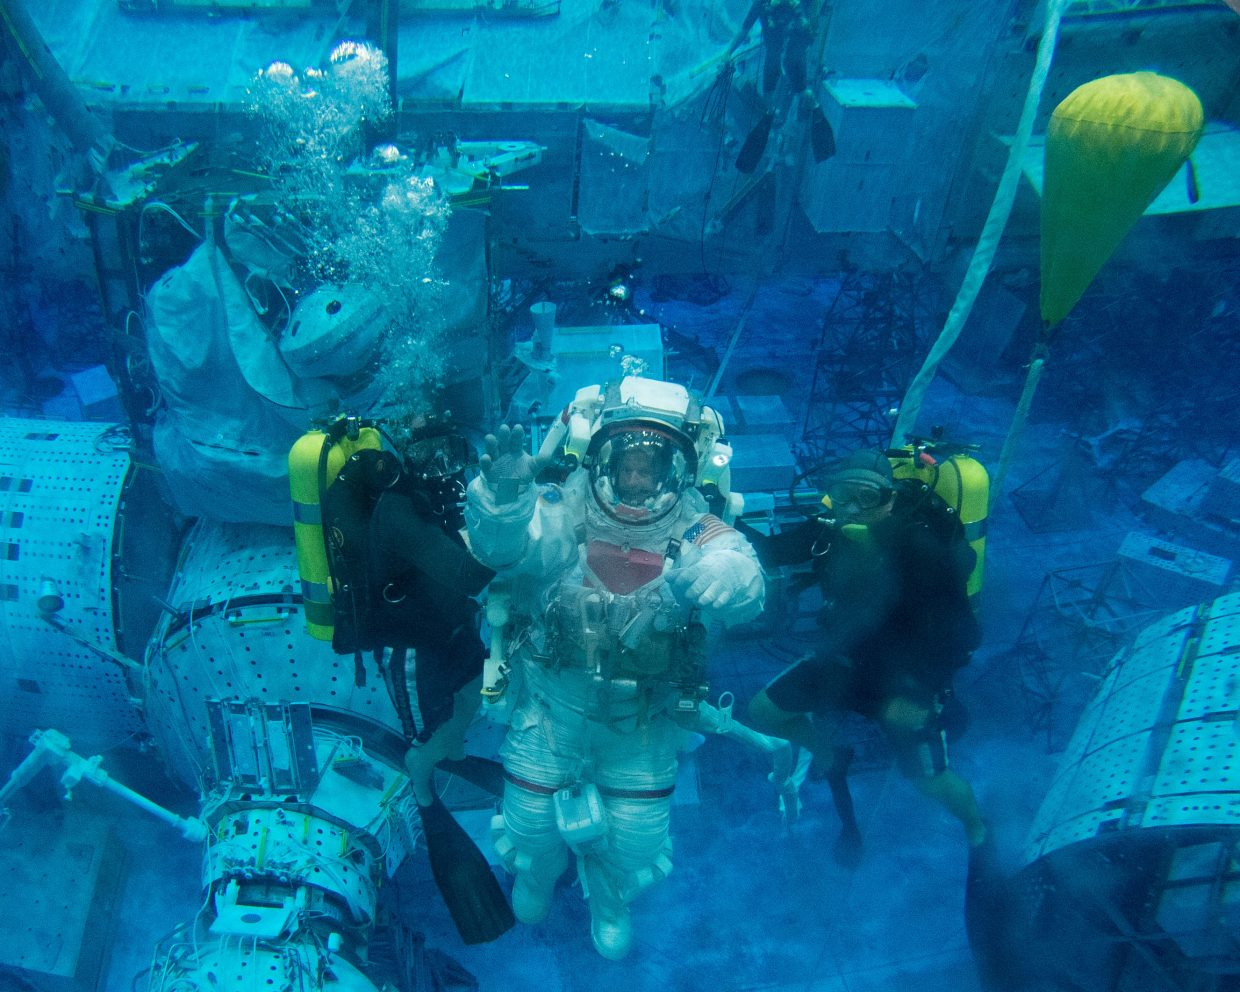 NASA astronaut Steve Swanson participates in a spacewalk training session in the waters of the Neutral Buoyancy Laboratory near NASA's Johnson Space Center. Divers are in the water to assist Swanson in his rehearsal, which is intended to help prepare him for possible work on the exterior of the International Space Station.